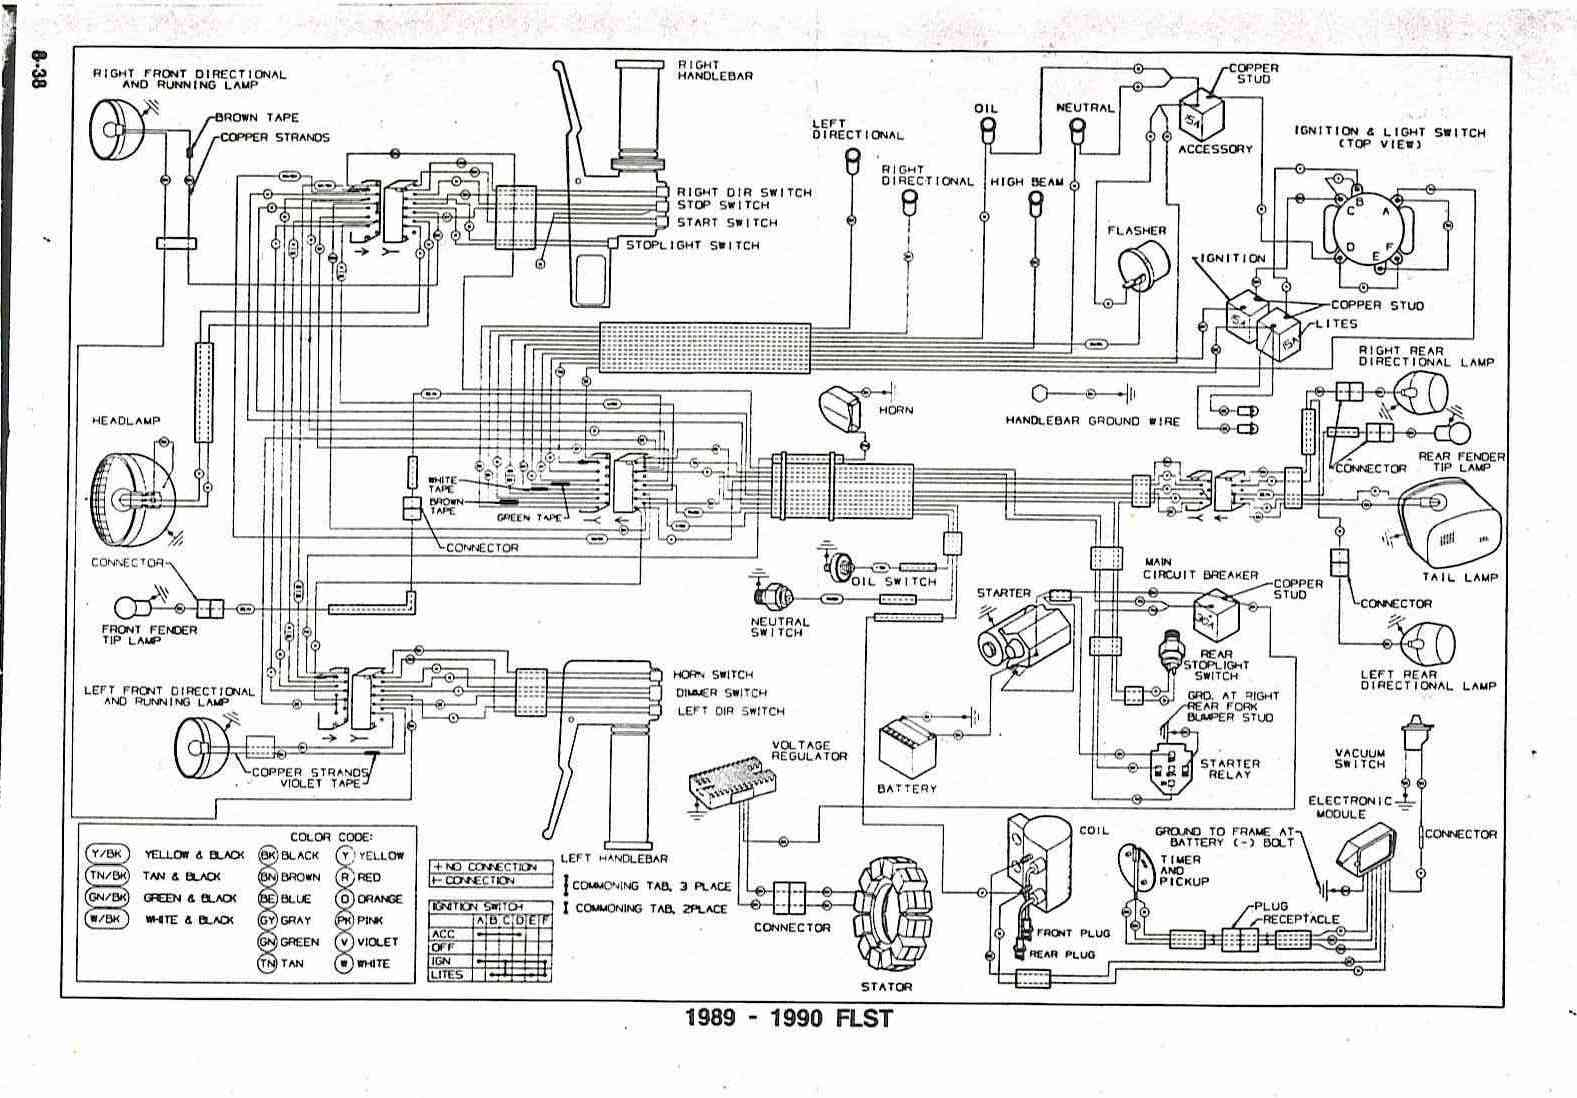 Ignition switch wiring diagram harley davidson fatboy